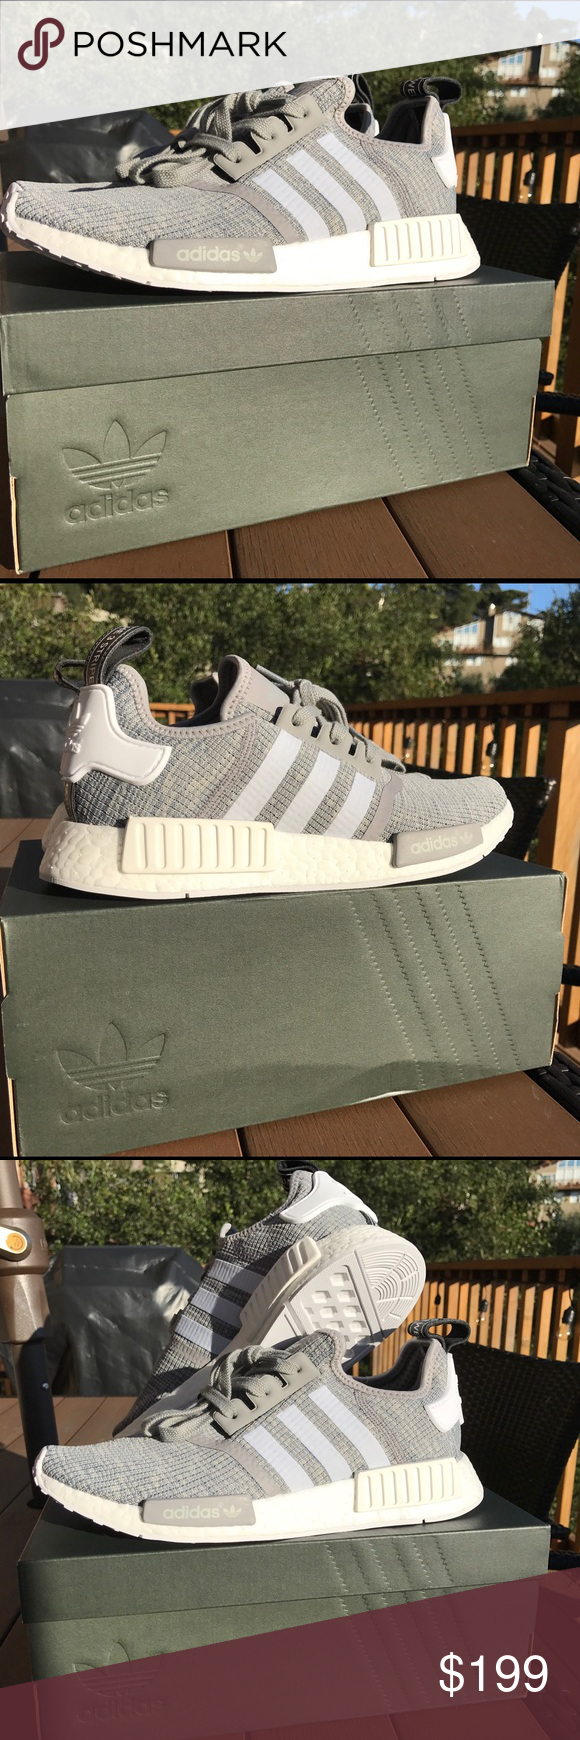 Adidas NMD R1 Glitch Kicks On Fire